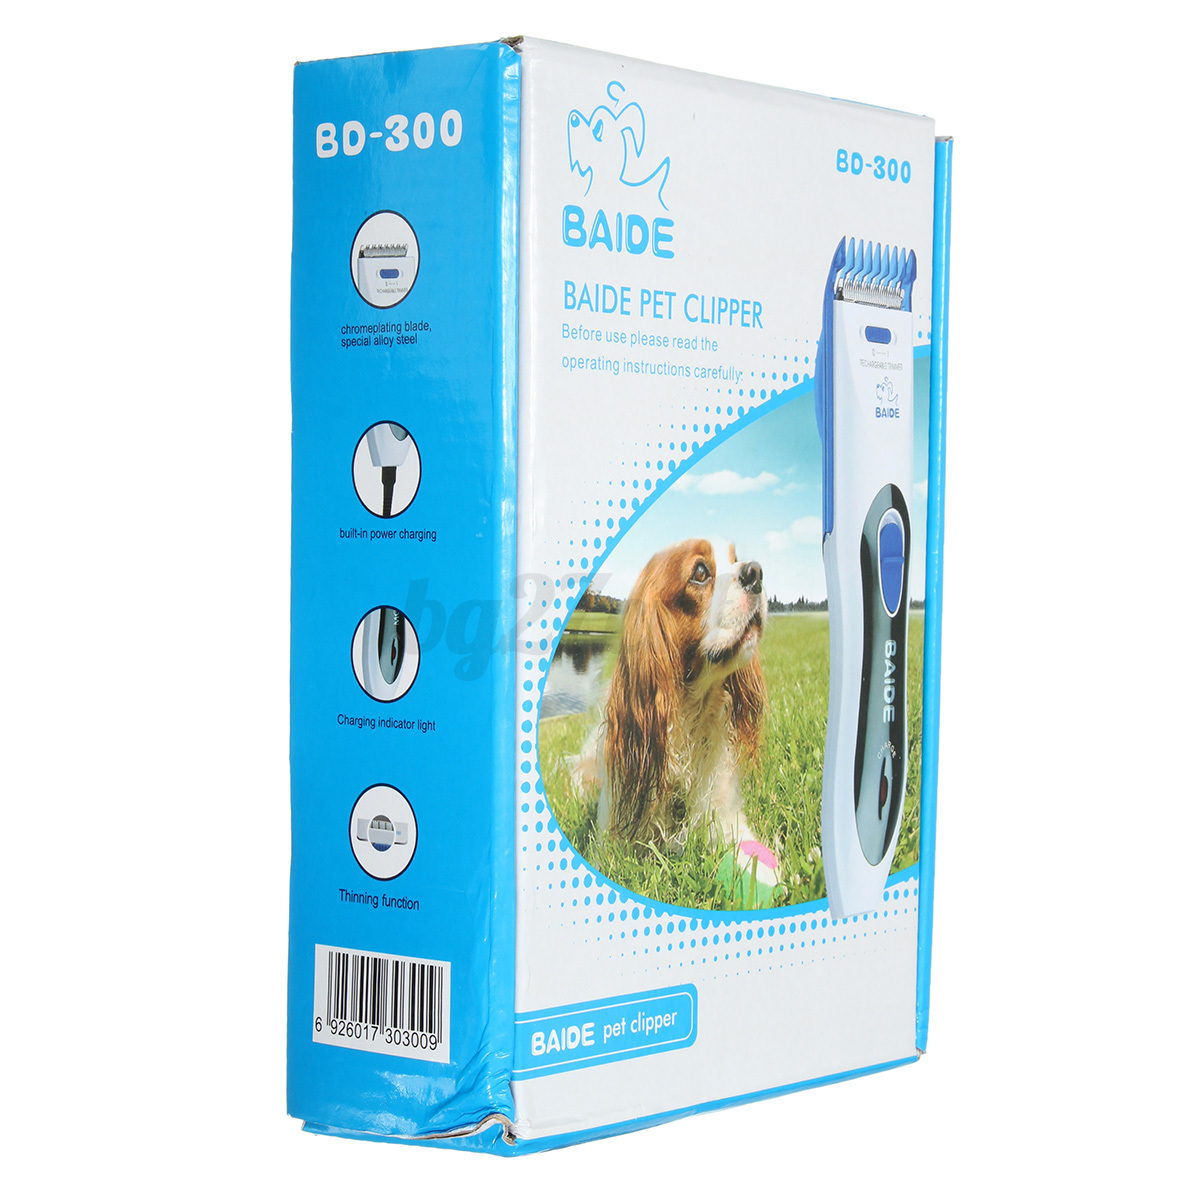 how to use electric shaver on dogs